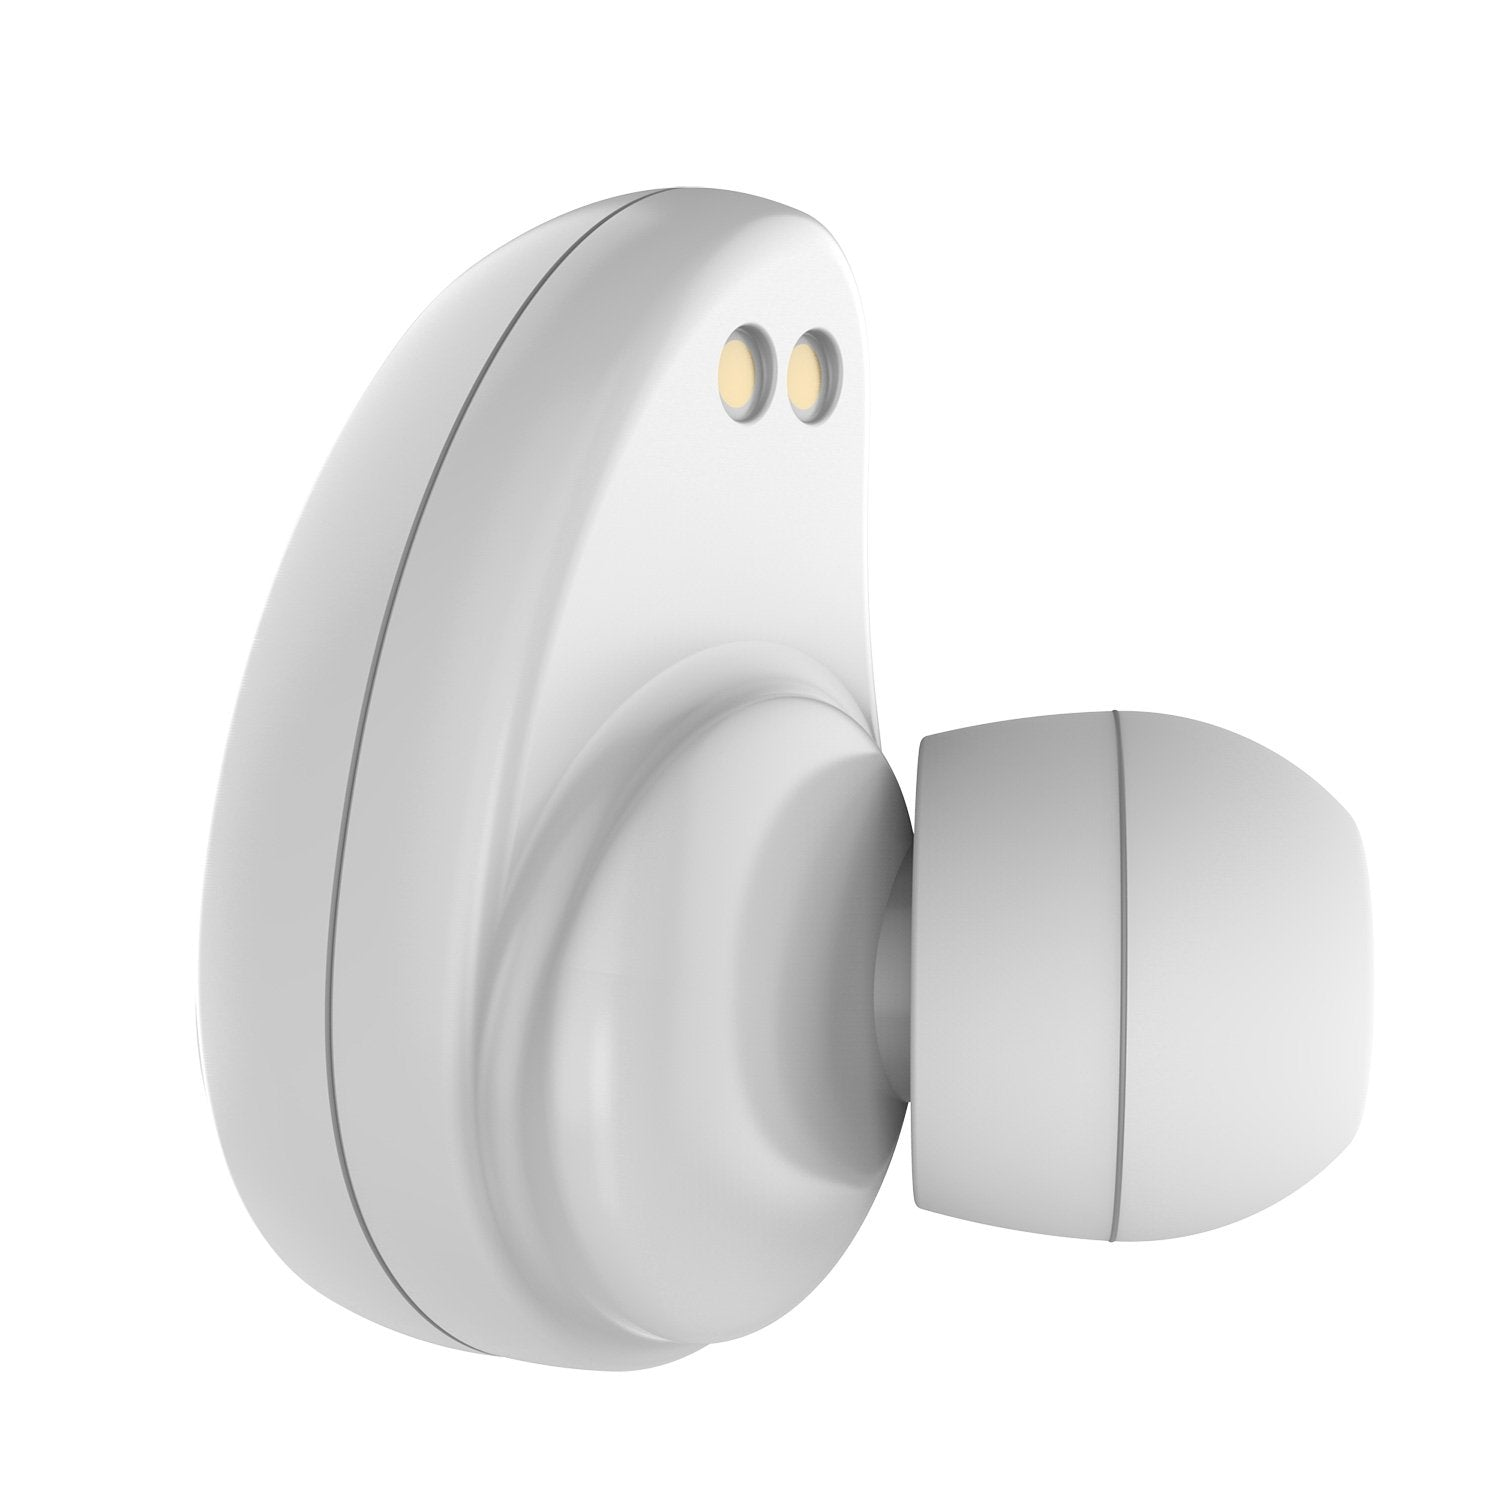 PunkBuds True Wireless Earbuds, Mini Bluetooth Headphones W/ Charging Case & Built-In Noise Cancelling Mic. [White]